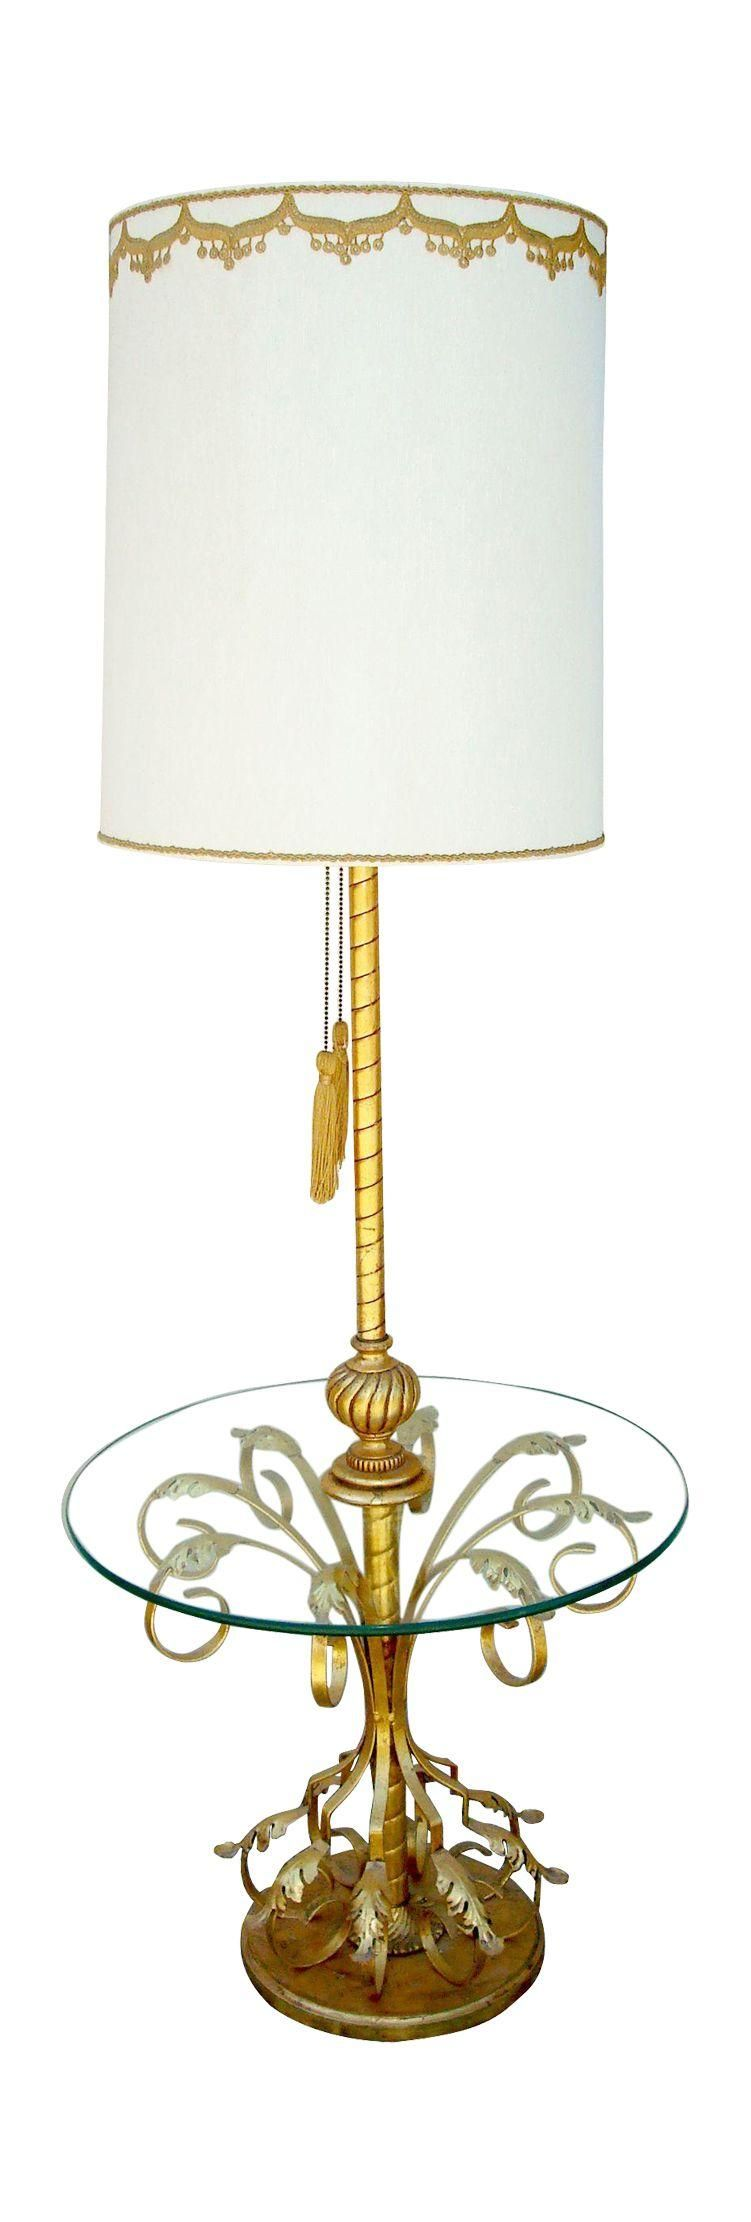 Pin On Floor Lamps With Table Attached